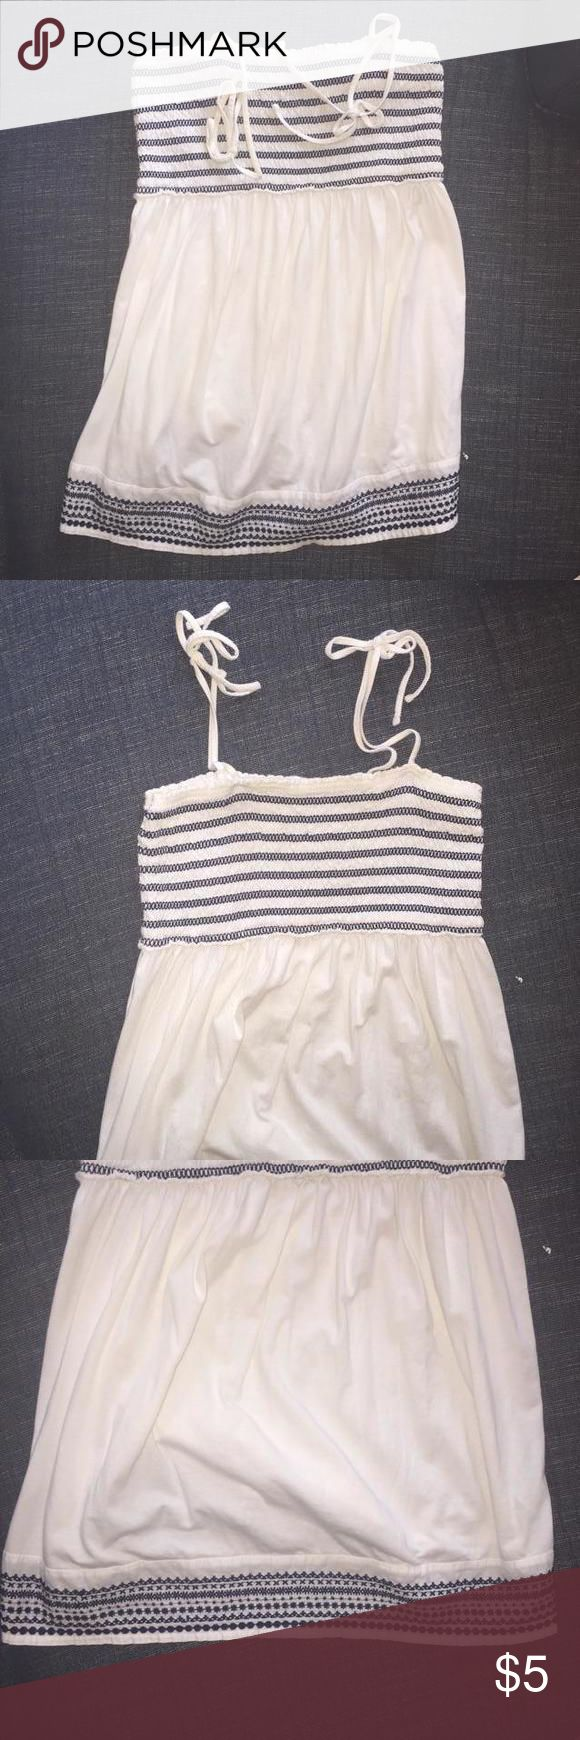 Motherhood Maternity Strappy Tank White tie tank top with navy blue embroidering by Motherhood Maternity. In good condition. Motherhood Maternity Tops Tank Tops